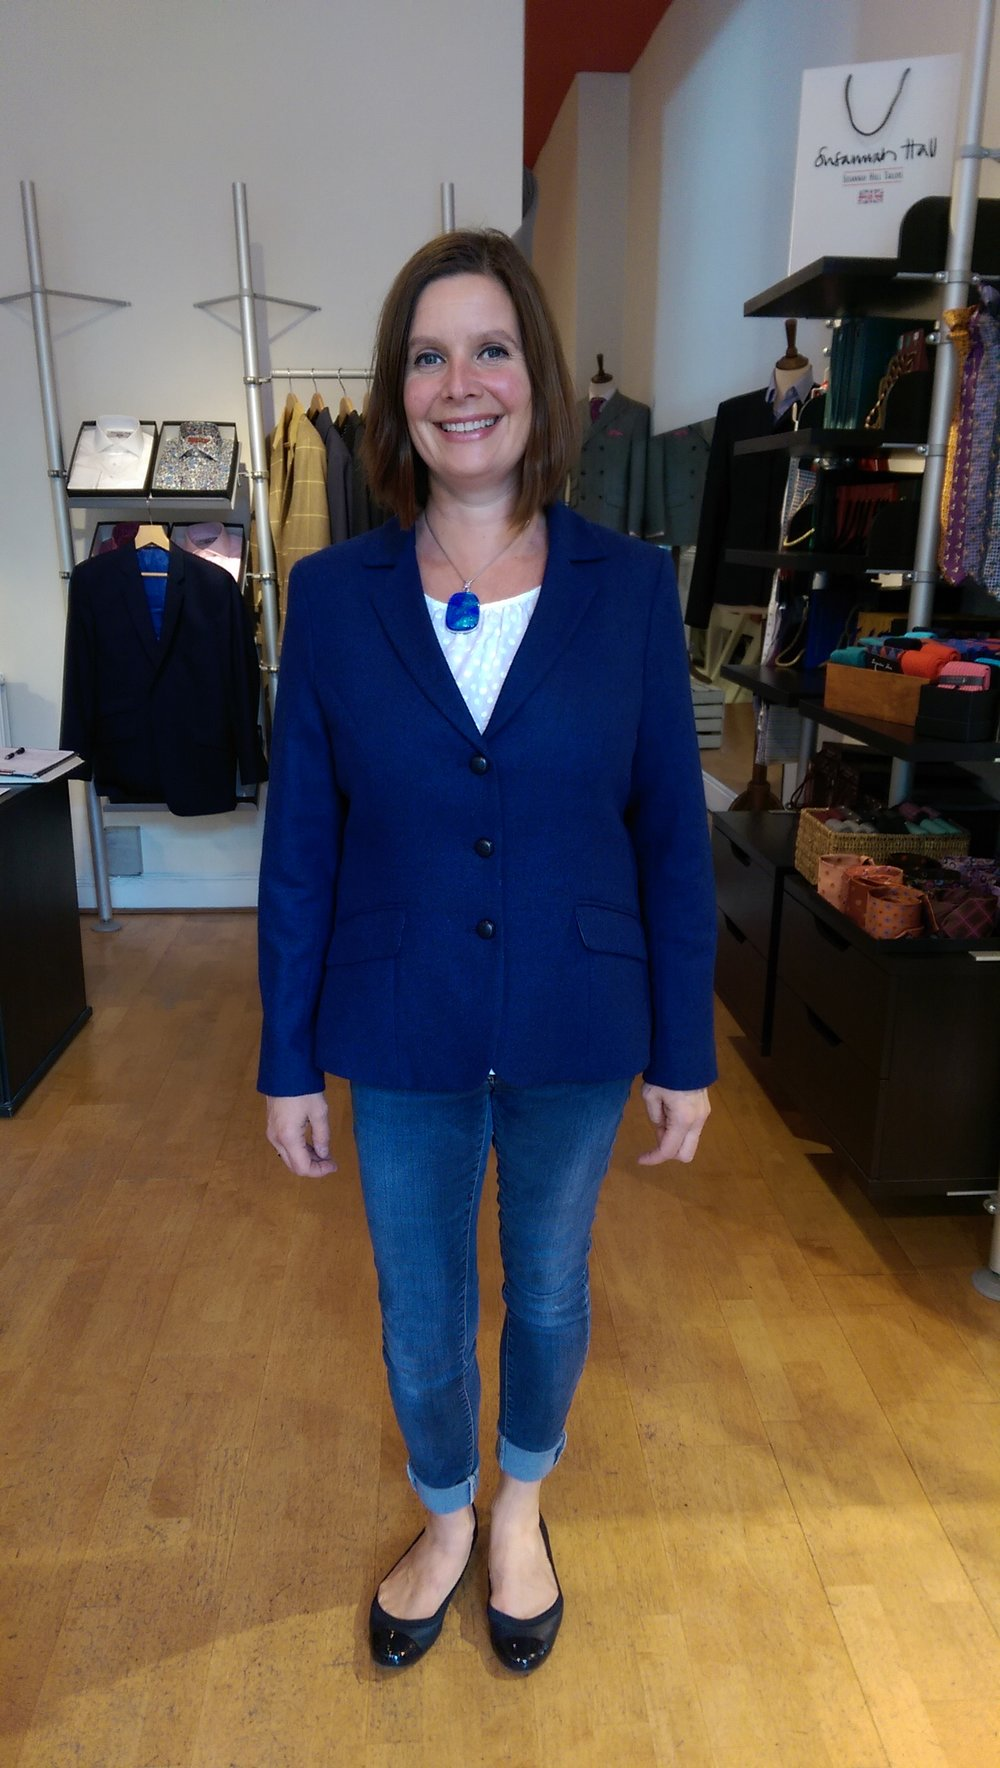 moon-blue-fabric-lambswool-susannah-hall-bespoke-ladies-tailoring-british-uk-made-jacket-womenswear.jpg